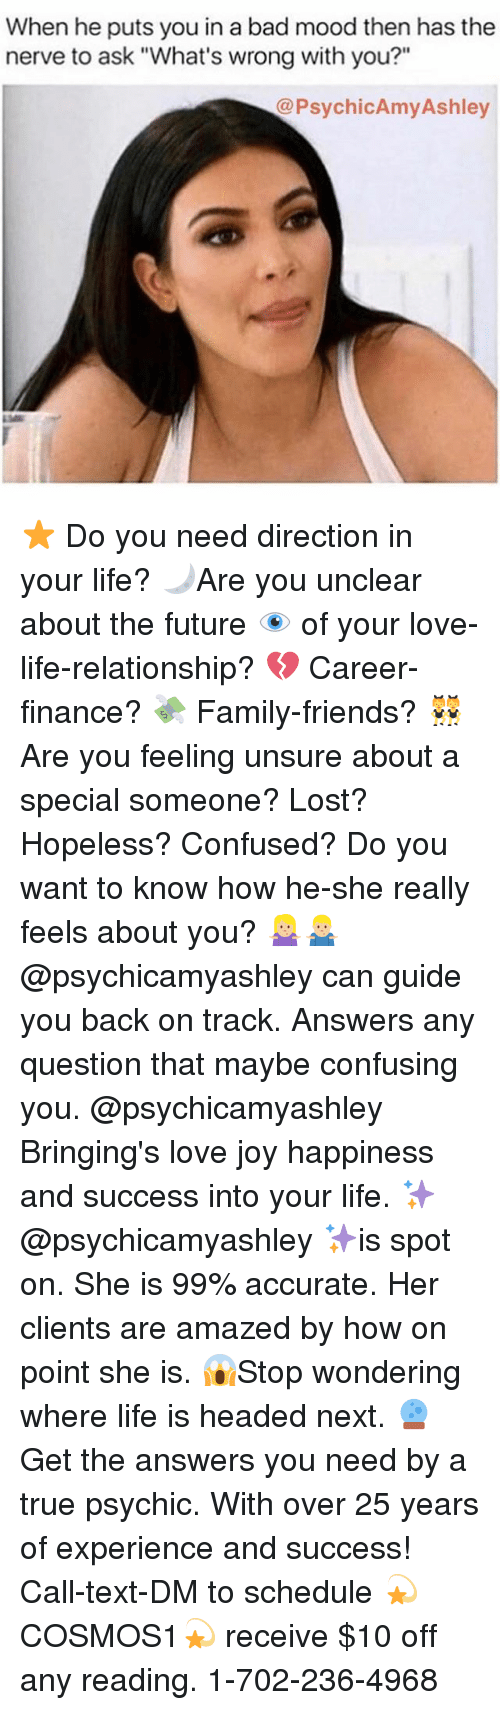 "ashleys: When he puts you in a bad mood then has the  nerve to ask ""What's wrong with you?""  @PsychicAmy Ashley ⭐️ Do you need direction in your life? 🌙Are you unclear about the future 👁 of your love-life-relationship? 💔 Career-finance? 💸 Family-friends? 👯 Are you feeling unsure about a special someone? Lost? Hopeless? Confused? Do you want to know how he-she really feels about you? 🤷🏼‍♀️🤷🏼‍♂️@psychicamyashley can guide you back on track. Answers any question that maybe confusing you. @psychicamyashley Bringing's love joy happiness and success into your life. ✨@psychicamyashley ✨is spot on. She is 99% accurate. Her clients are amazed by how on point she is. 😱Stop wondering where life is headed next. 🔮 Get the answers you need by a true psychic. With over 25 years of experience and success! Call-text-DM to schedule 💫COSMOS1💫 receive $10 off any reading. 1-702-236-4968"